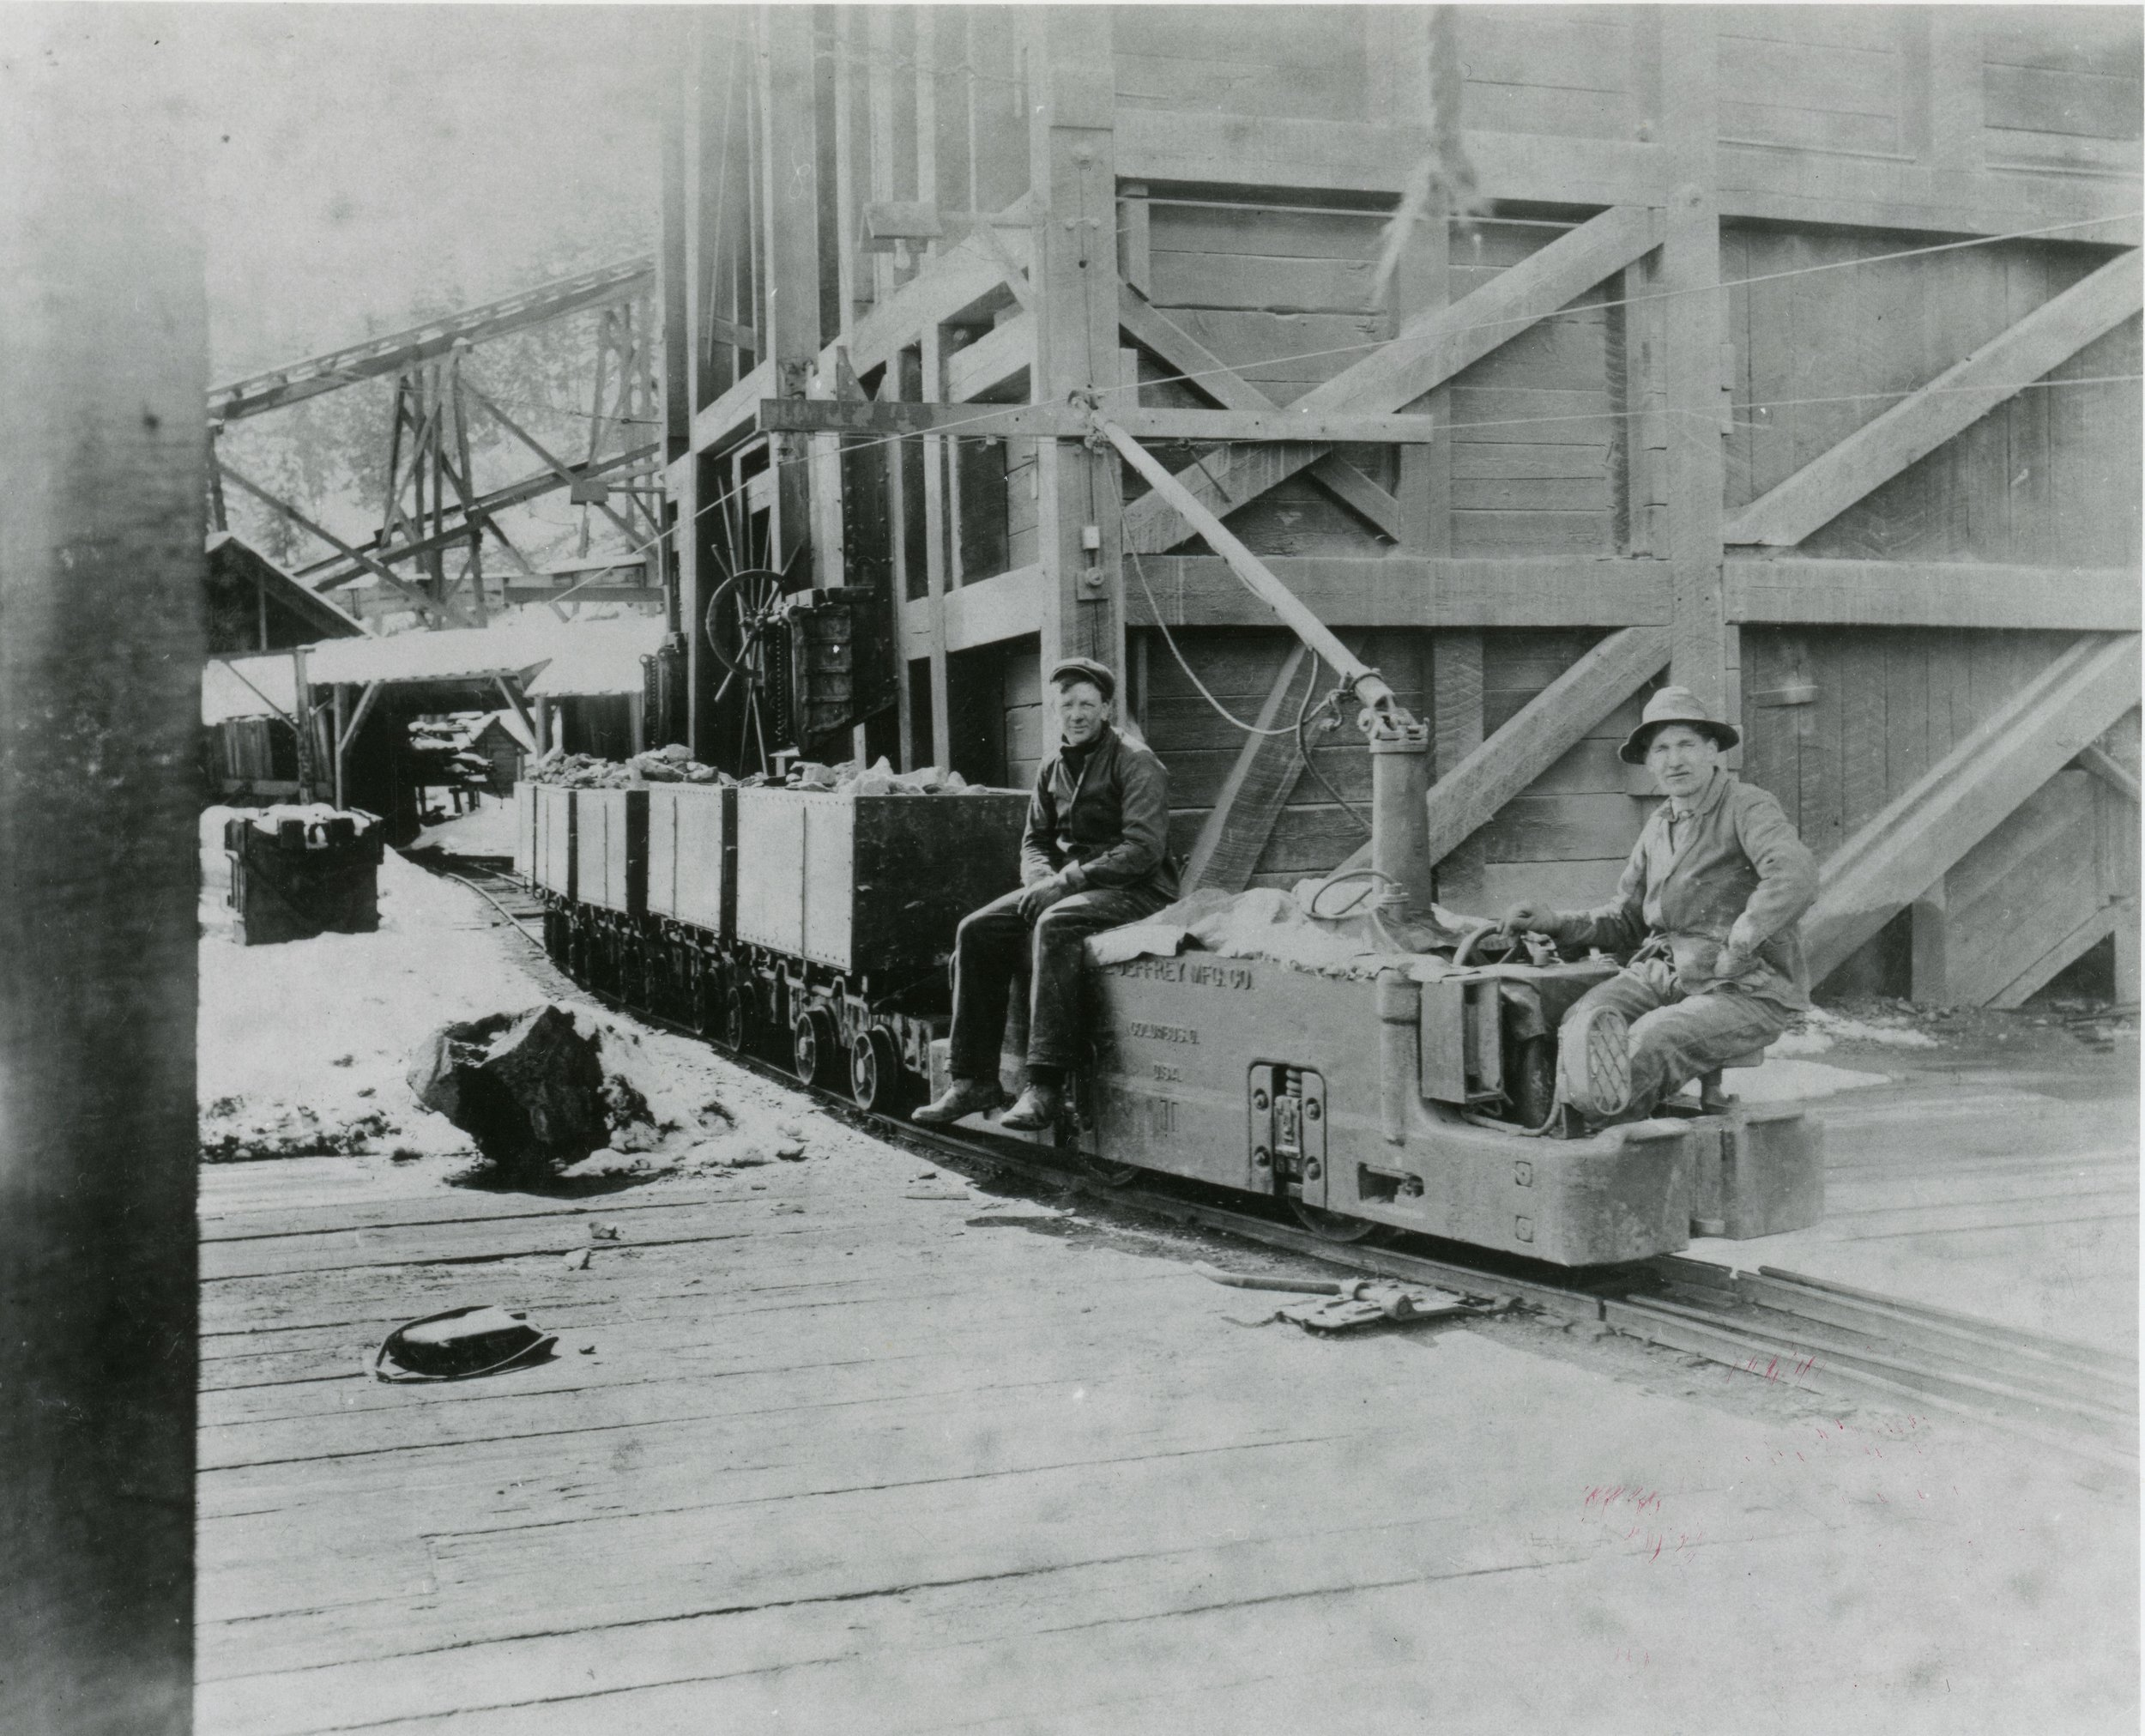 Photo 2304.0069: One of the electric trams used in the Centre Star Mine. As seen here, the small electric-run locomotives were able to haul many full ore cars at once. Date and names unknown.